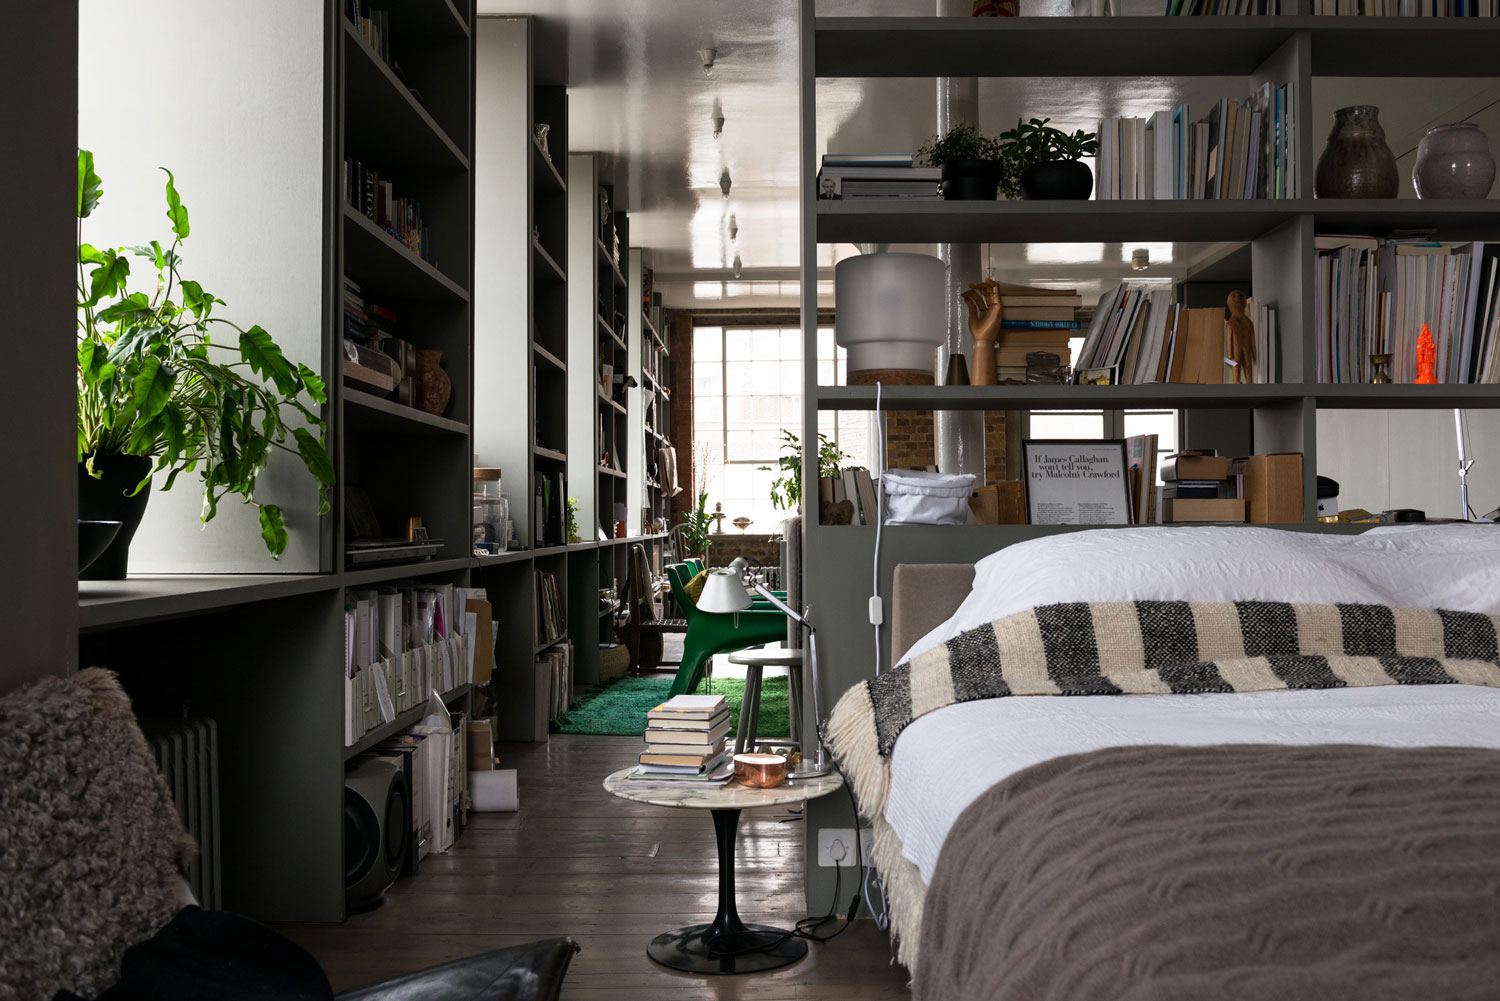 Ilse Crawfords Victorian Warehouse Home In London